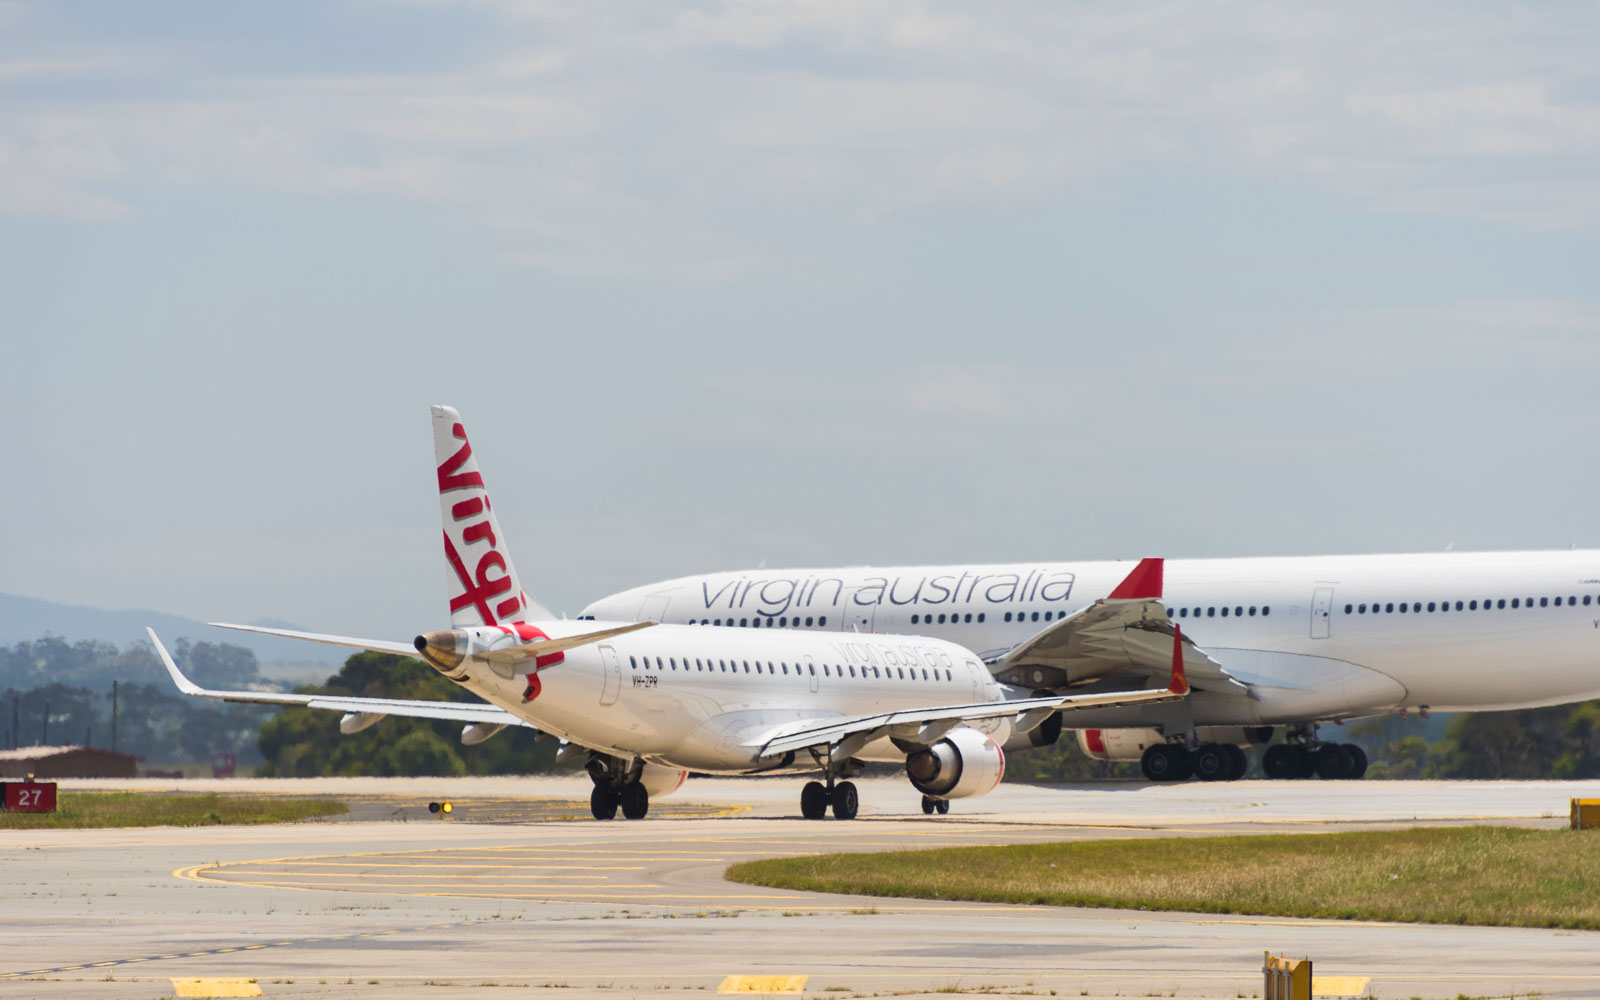 Newlywed asked to pay more than $8,000 for Virgin Australia flight after changing last name